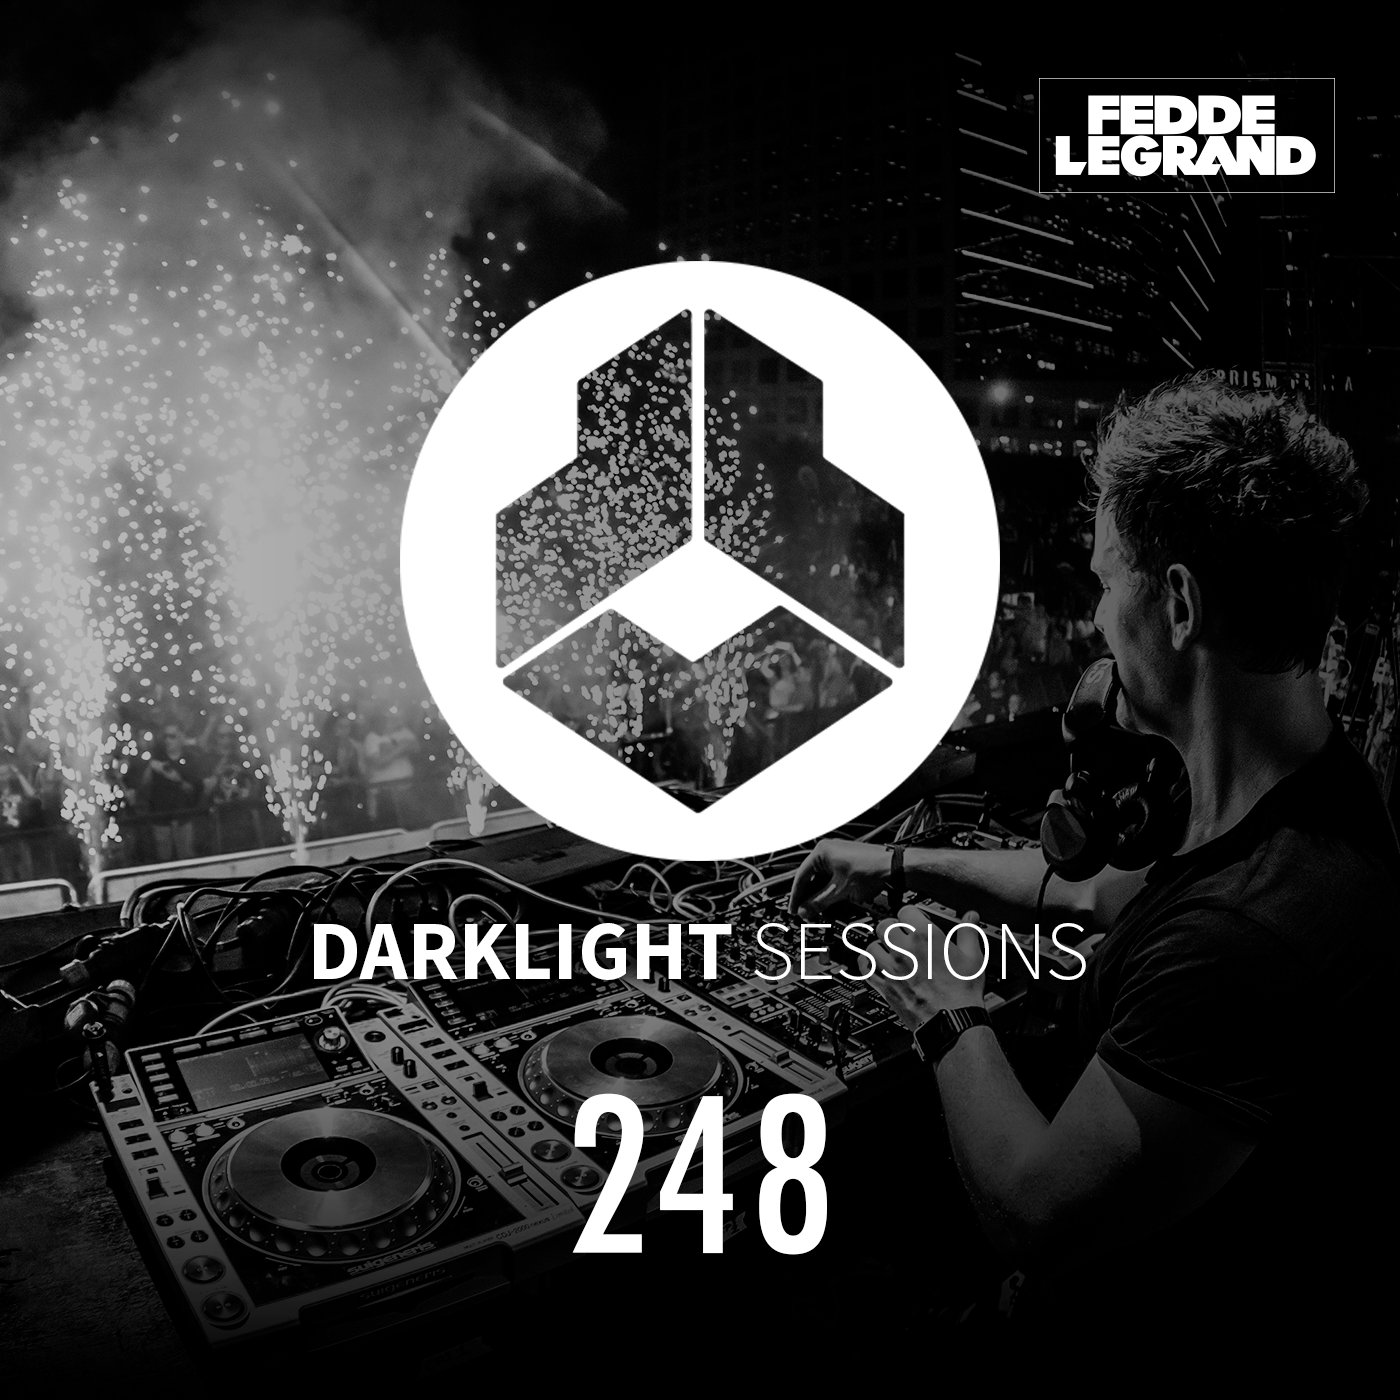 Darklight Sessions 248